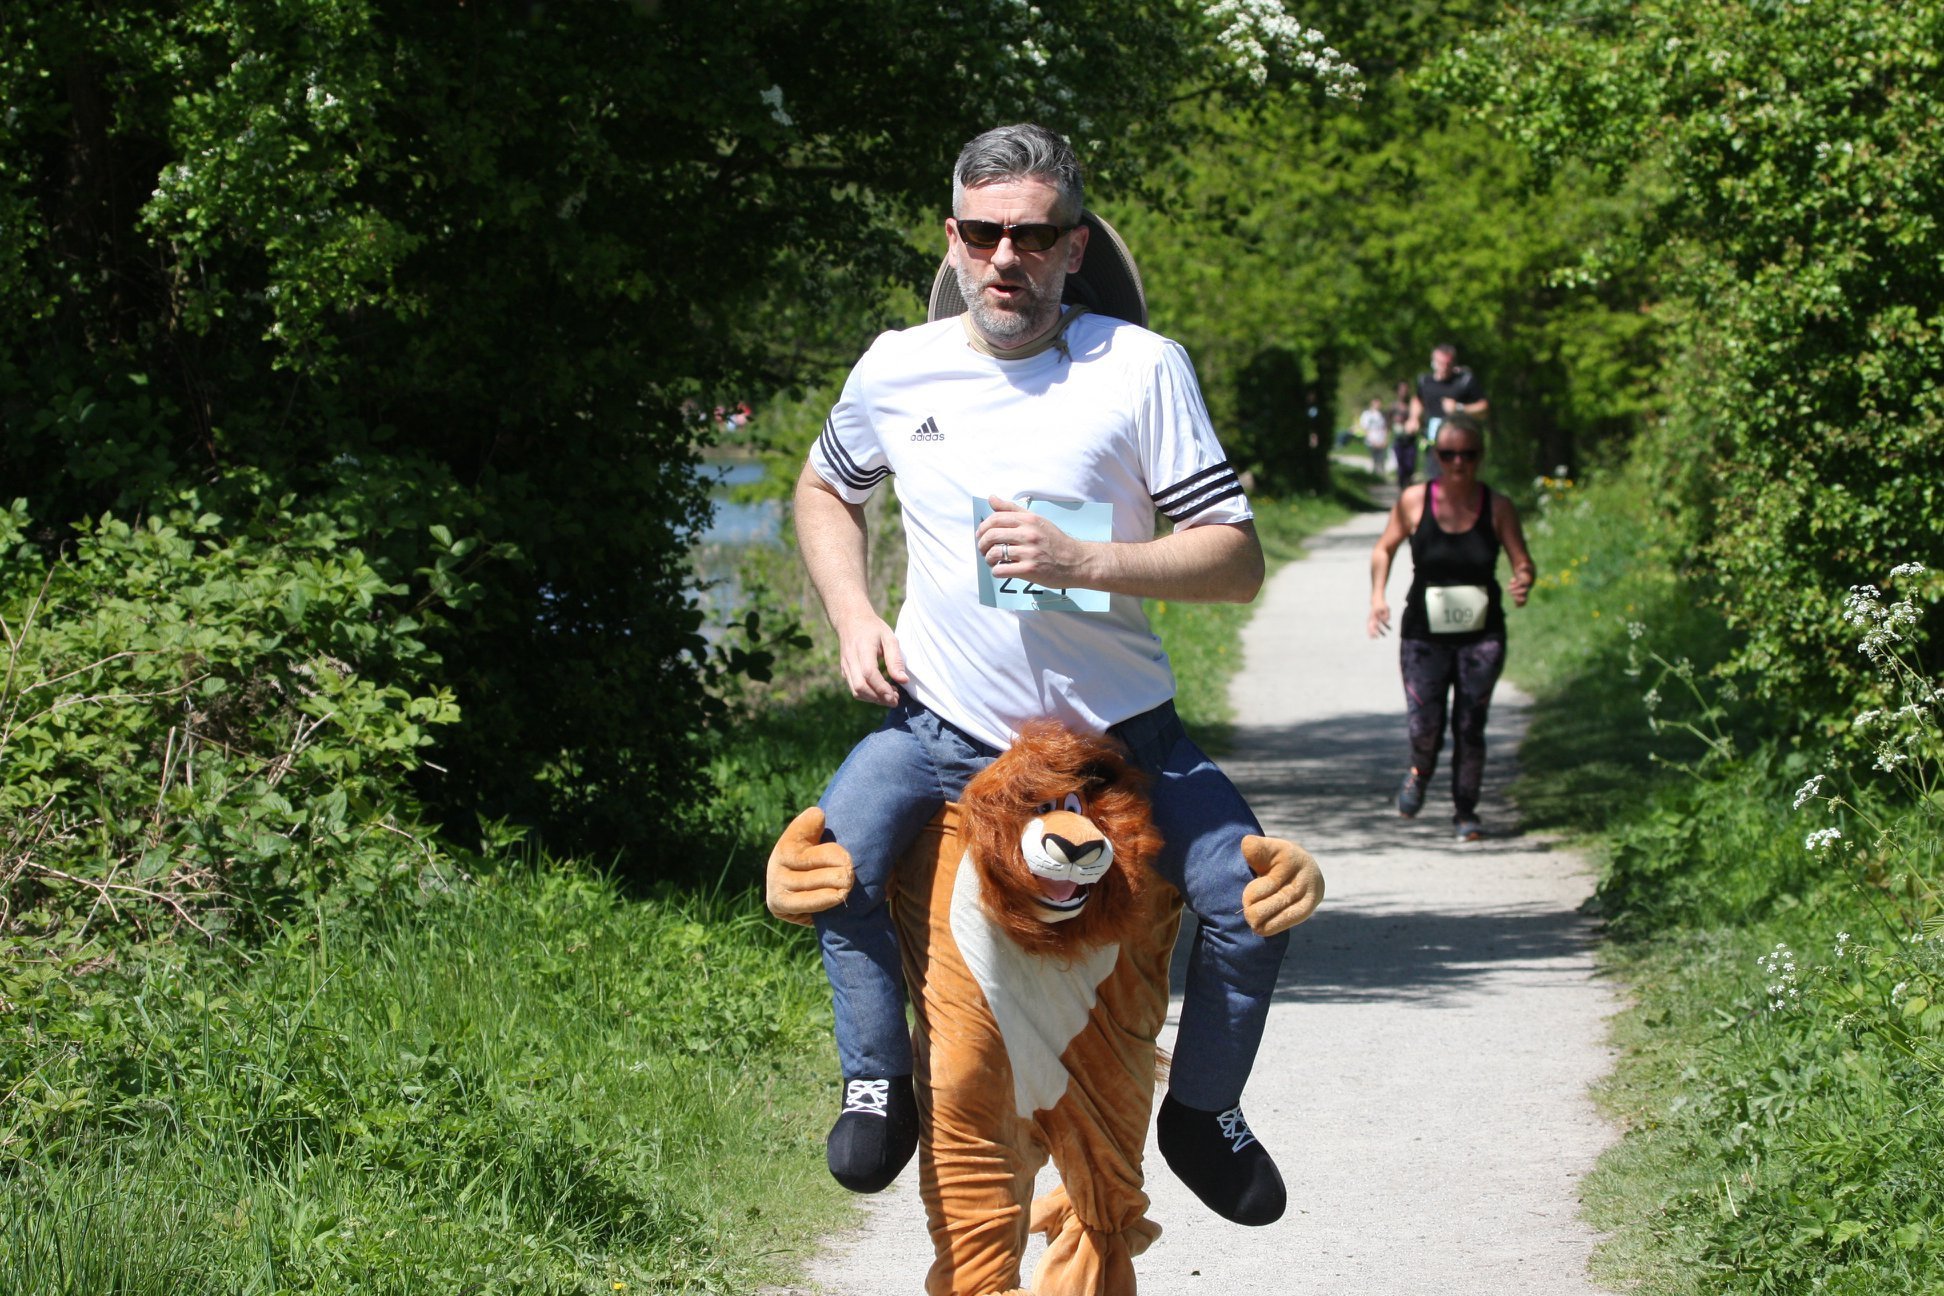 Andy Jones of The Lion was the fastest runner in fancy dress. Photo by Ron Roberts